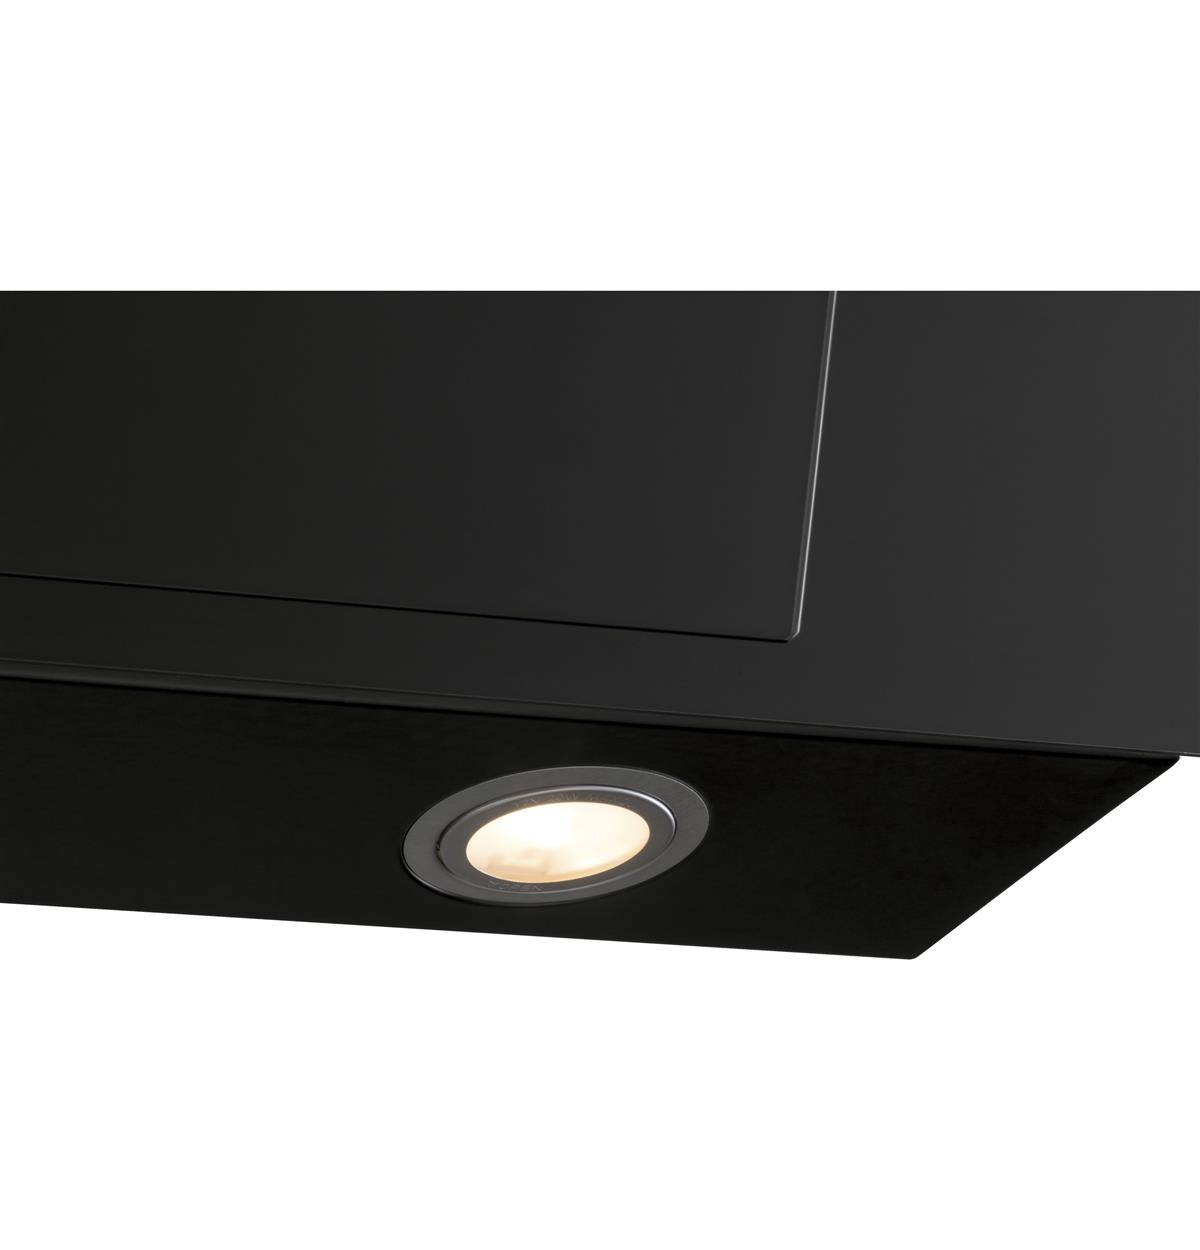 Black Wall-Mount Hoods HCH2400ACB Feature Photos